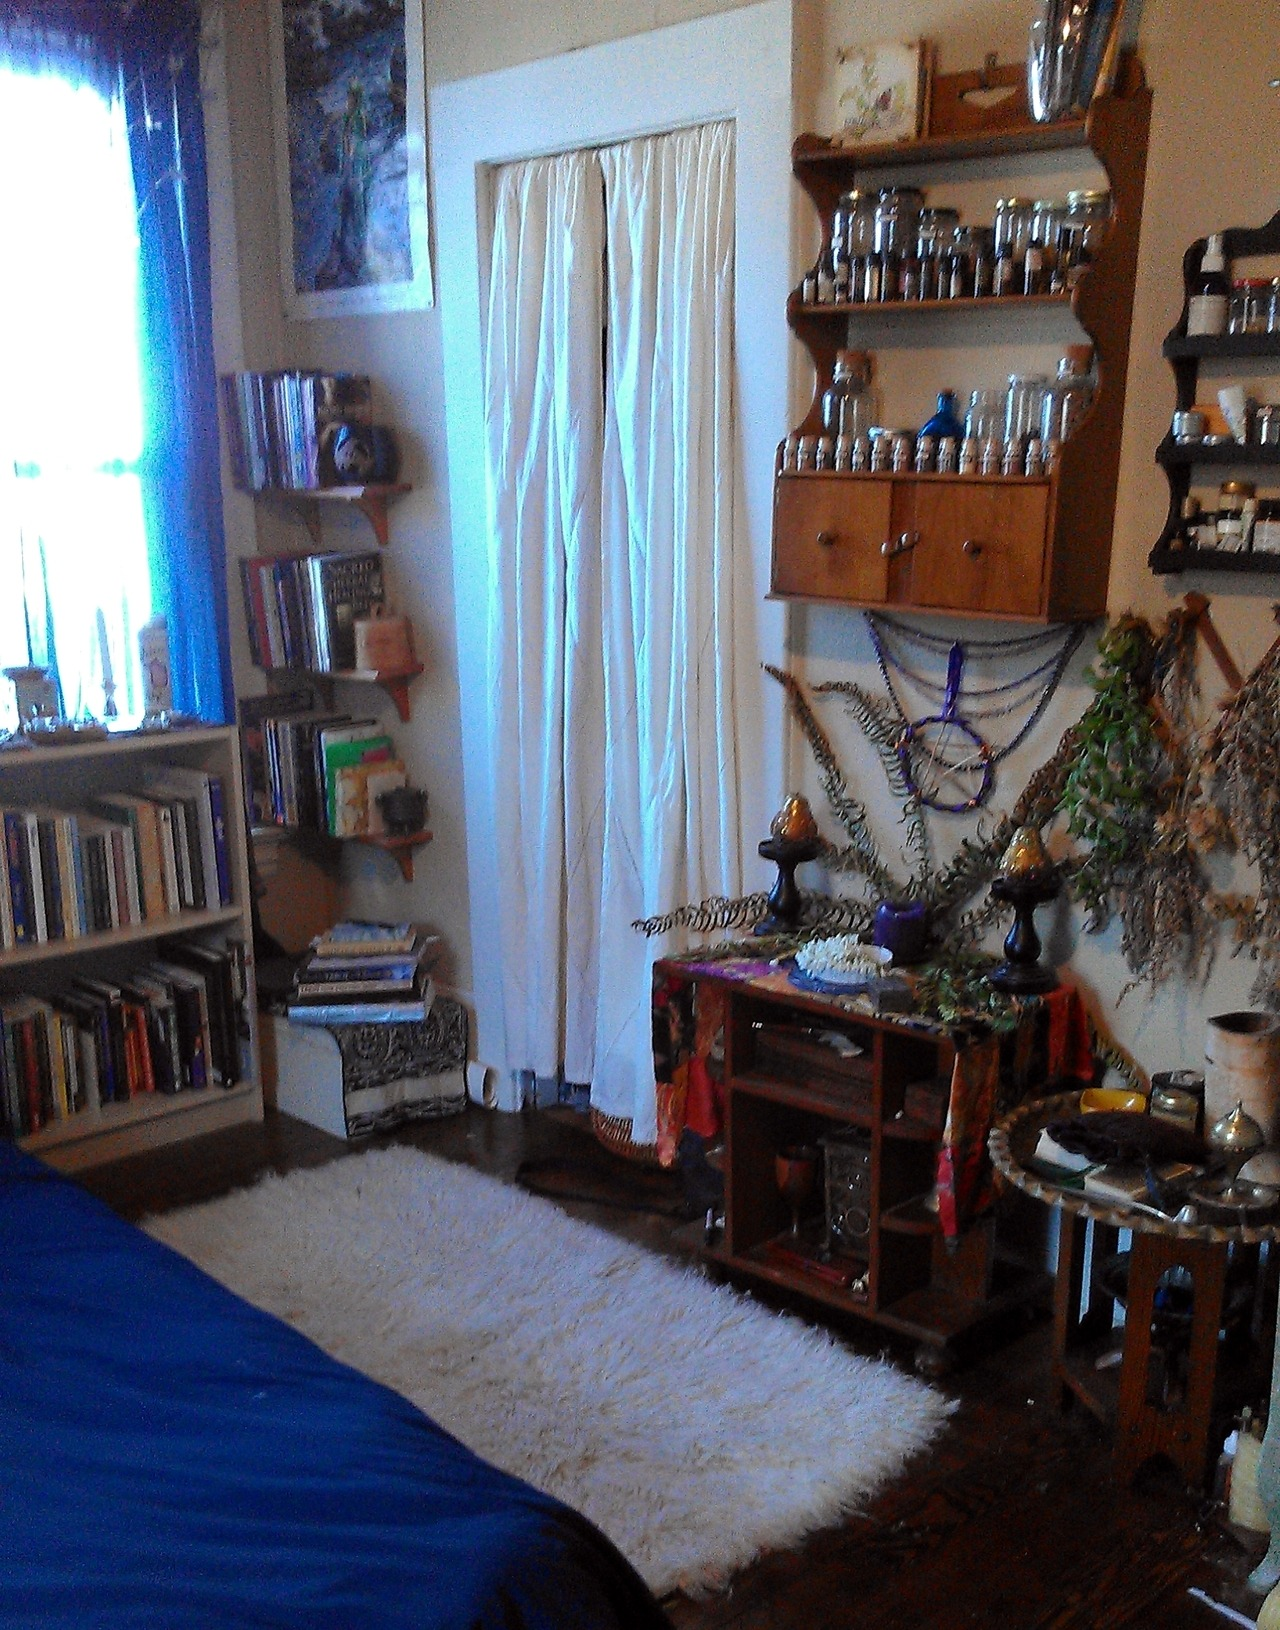 upthewitchypunx:  My side of the room full of books, altars, witchy stuff, and sometimes Jackie cat.